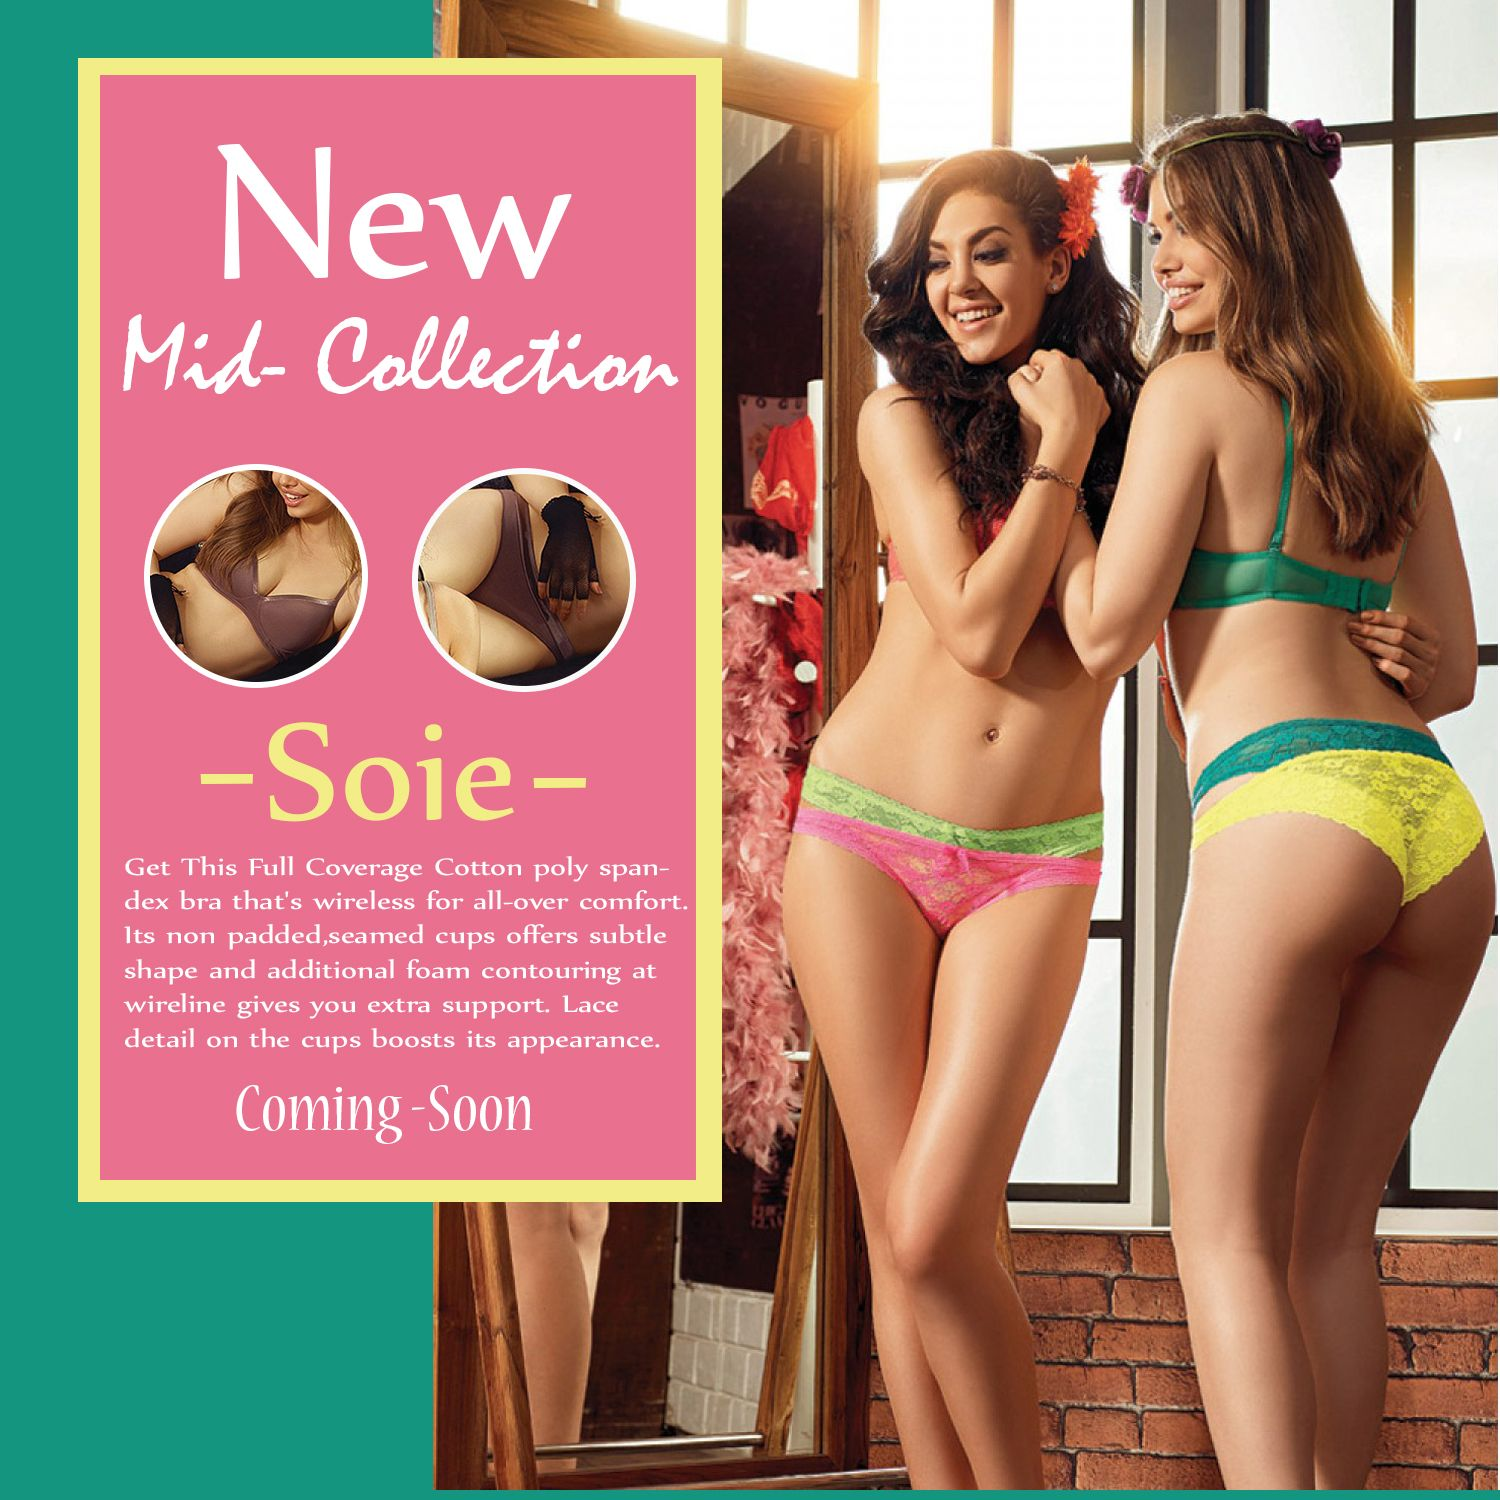 New and stylish collection in Soie, now available at #FabsDeal ...